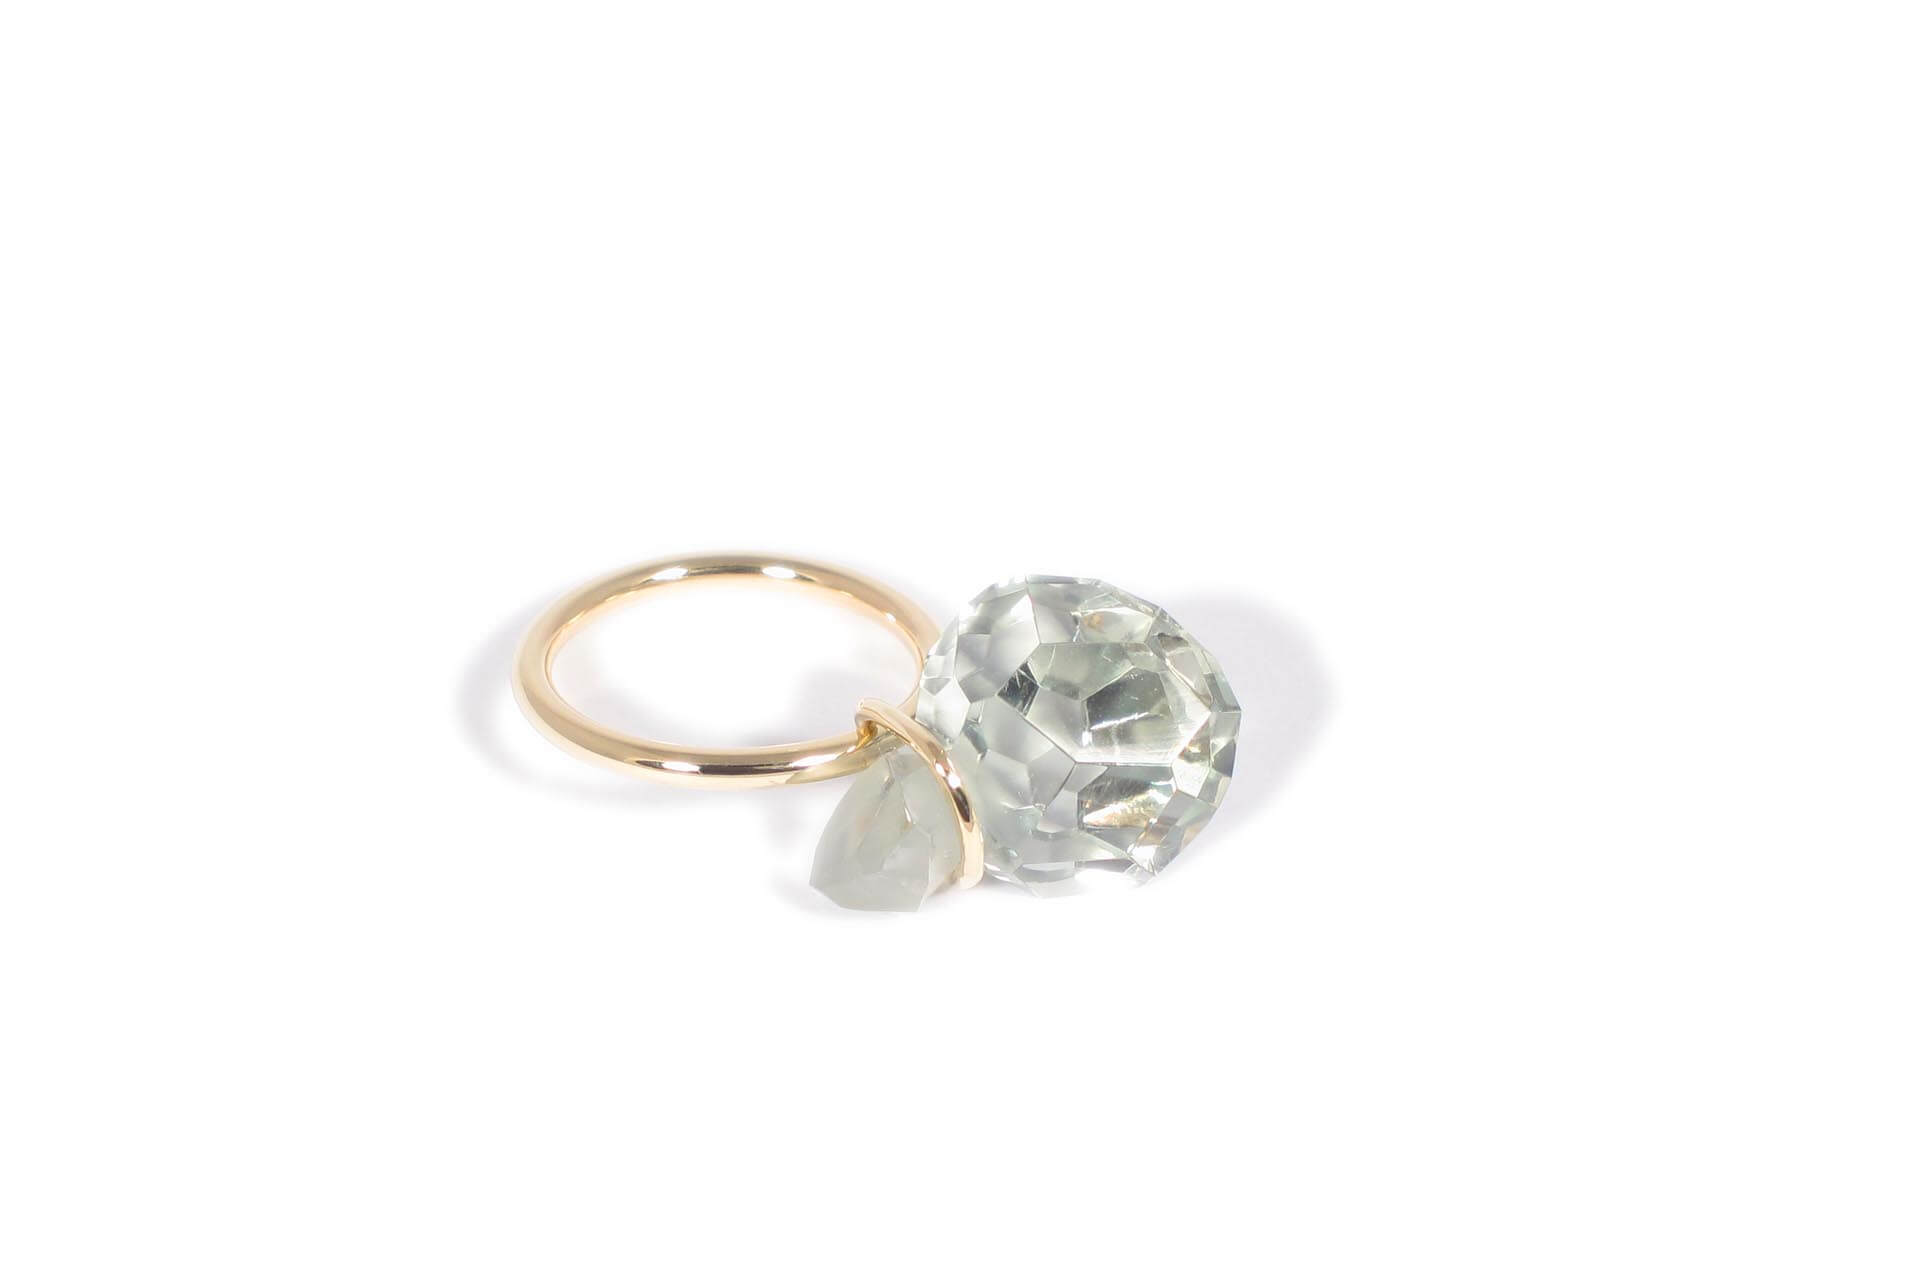 Annette Ehinger gold ring with a green amethyst